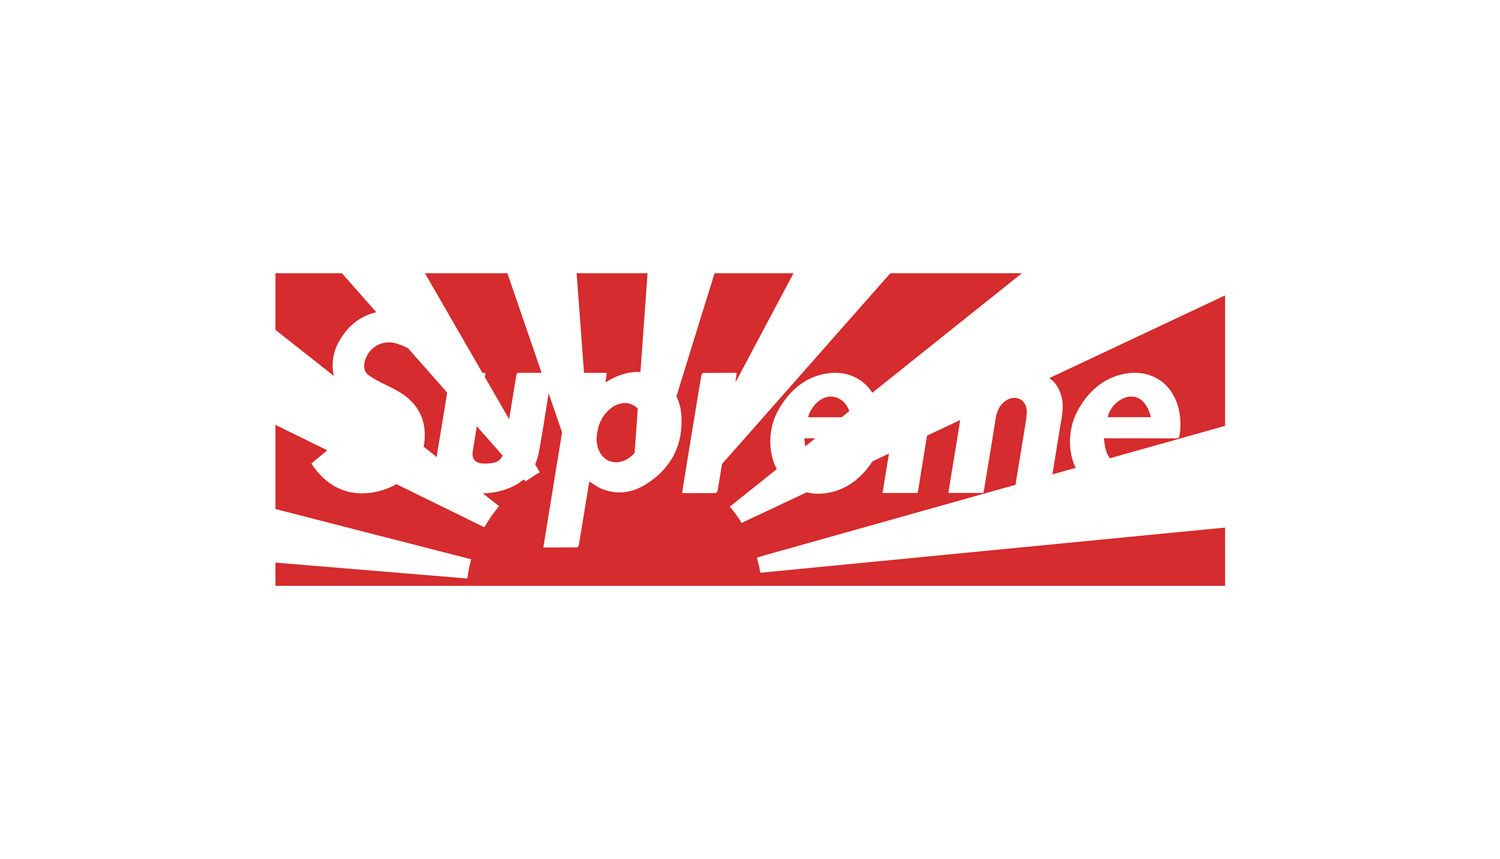 1500x859 Pin by xxxsupreme on Box Logos | Pinterest | Supreme logo